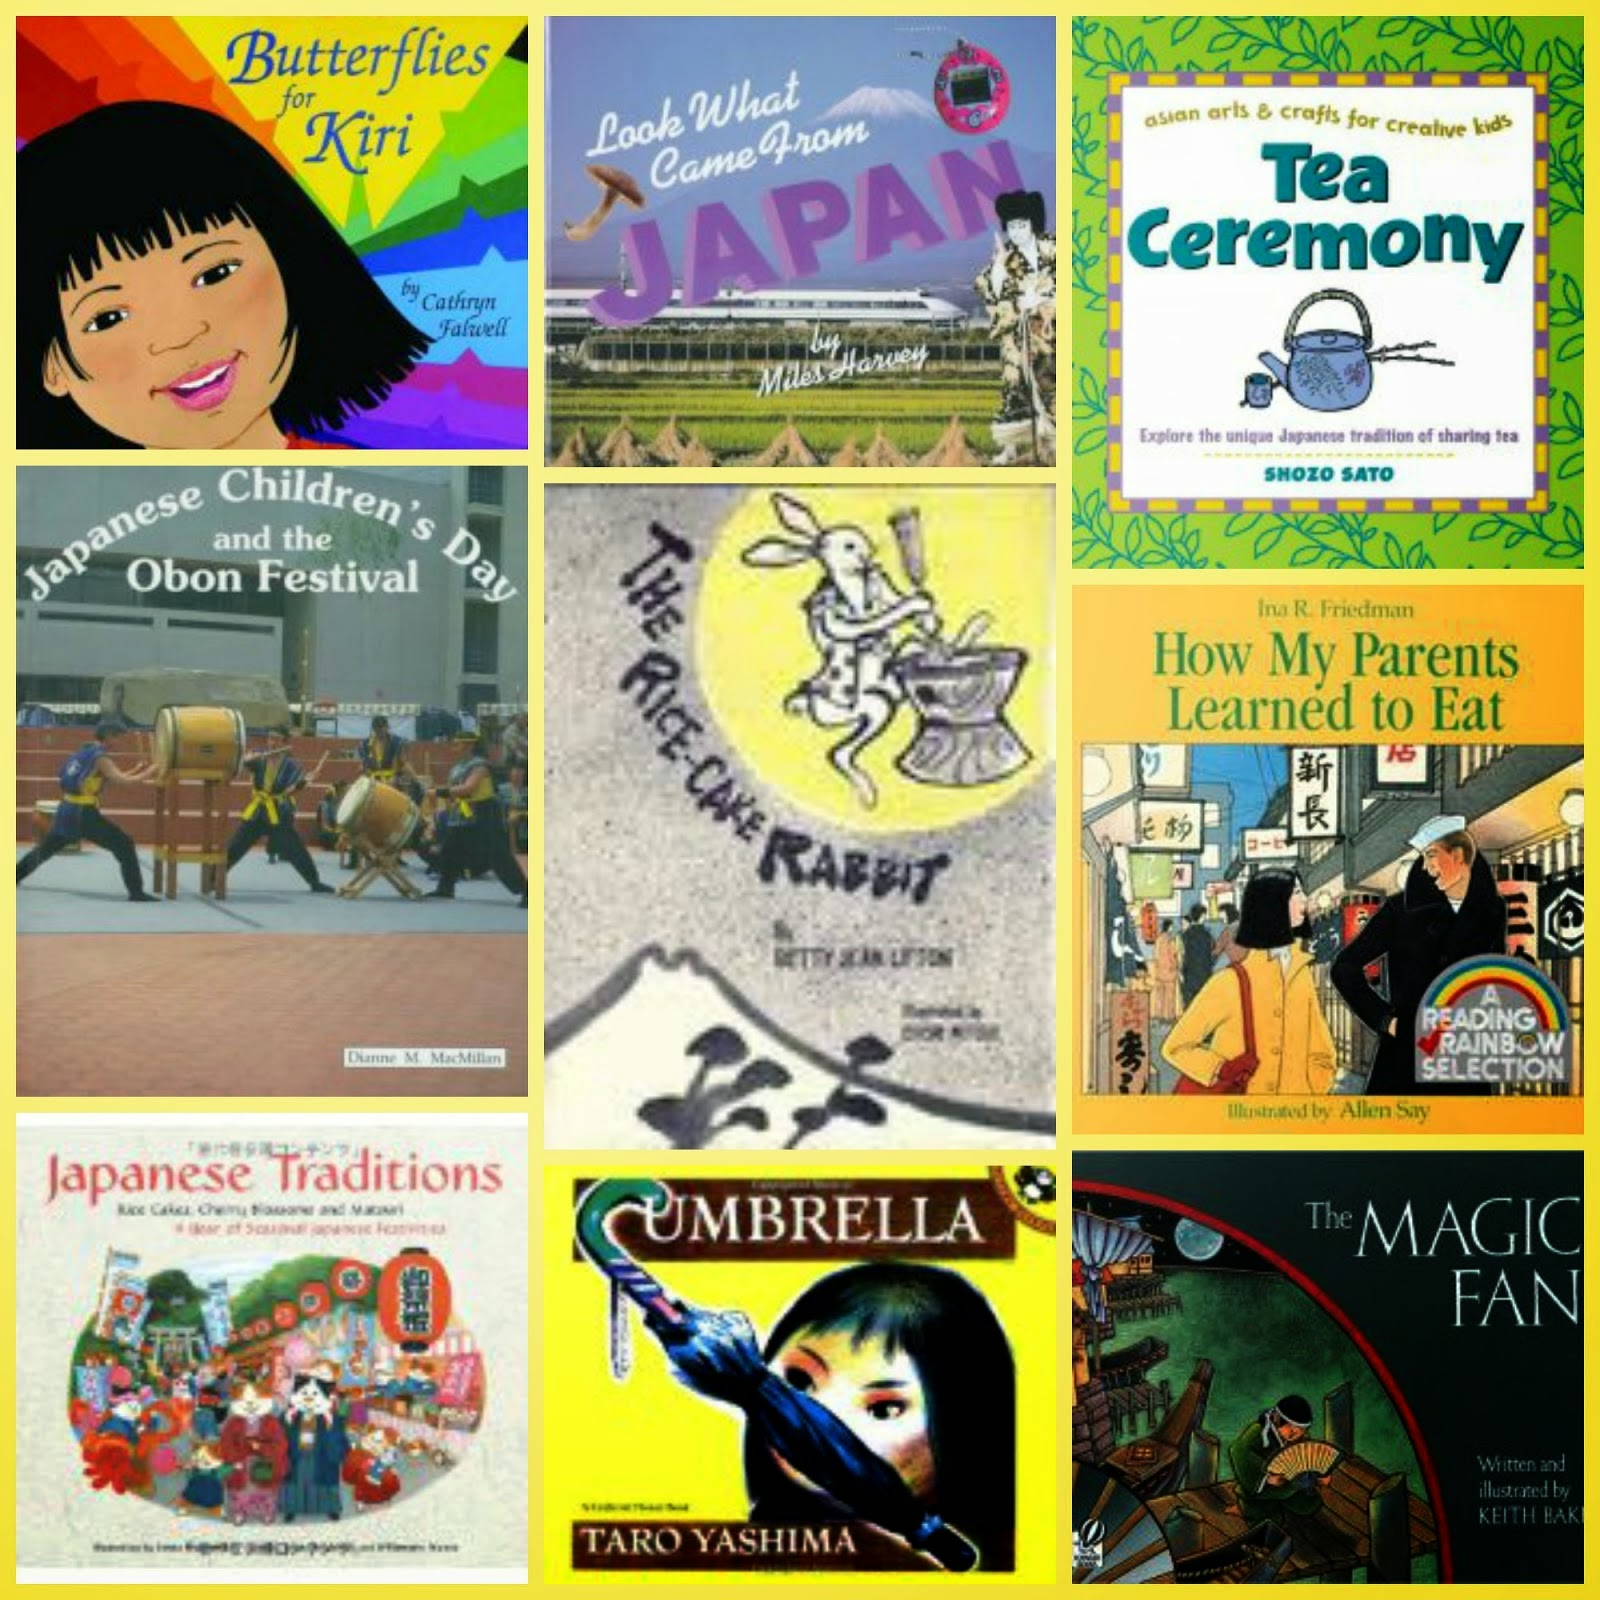 http://craftymomsshare.blogspot.com/2014/05/asian-pacific-american-heritage-month.html